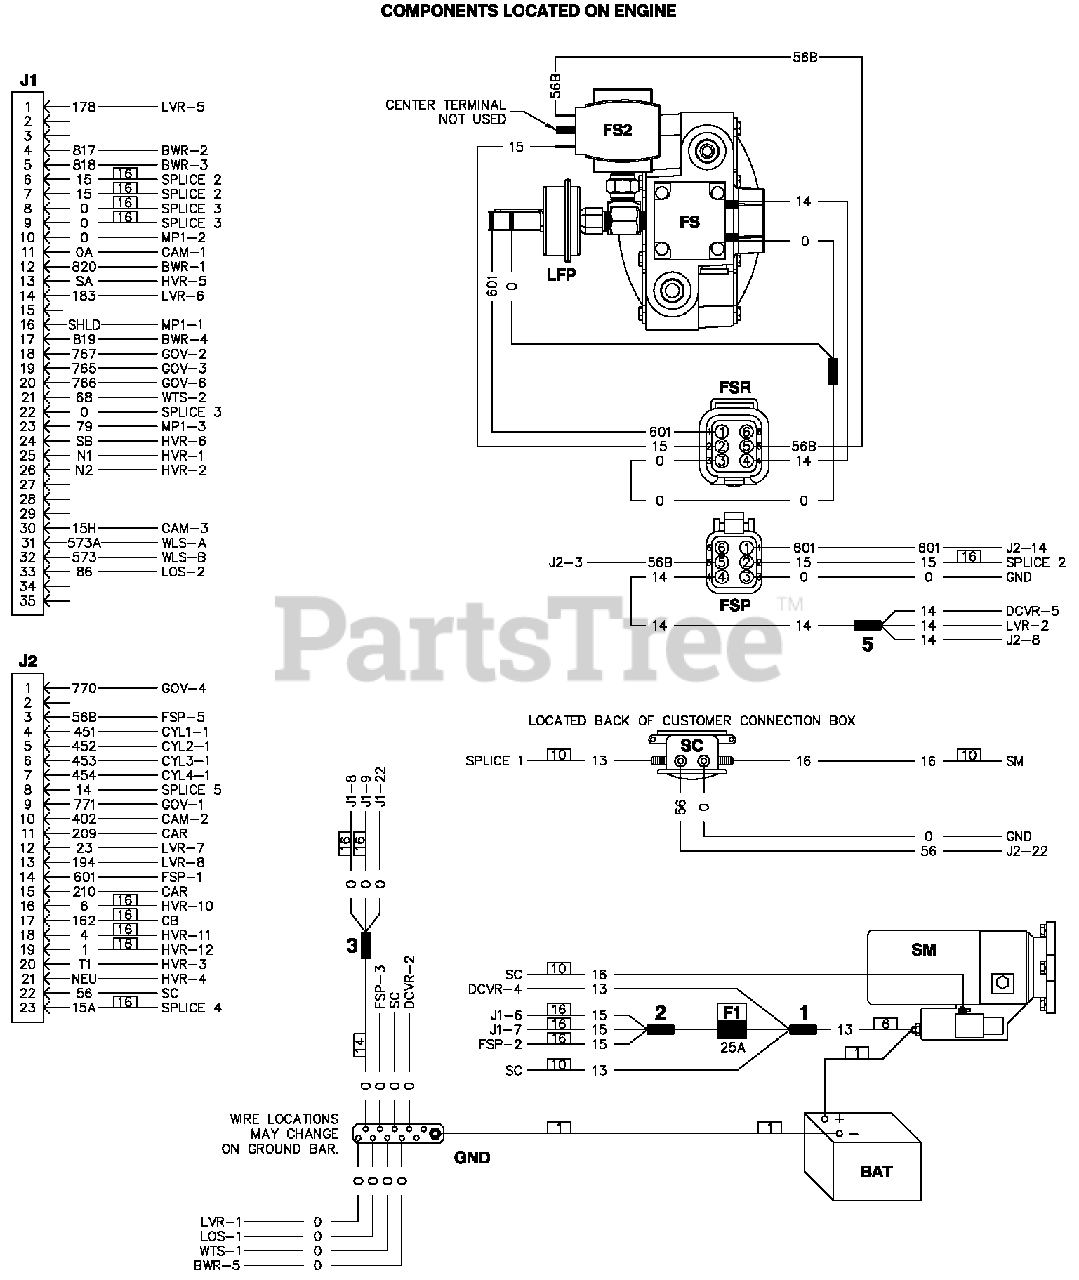 Generac ST03015GNSX - Generac 30kW Home Standby Generator (SN: 7143487 -  9152521) (2014) Wiring Diagram (0J4556) Parts Lookup with Diagrams |  PartsTree | Generac 30 Kw Wiring Diagram |  | PartsTree